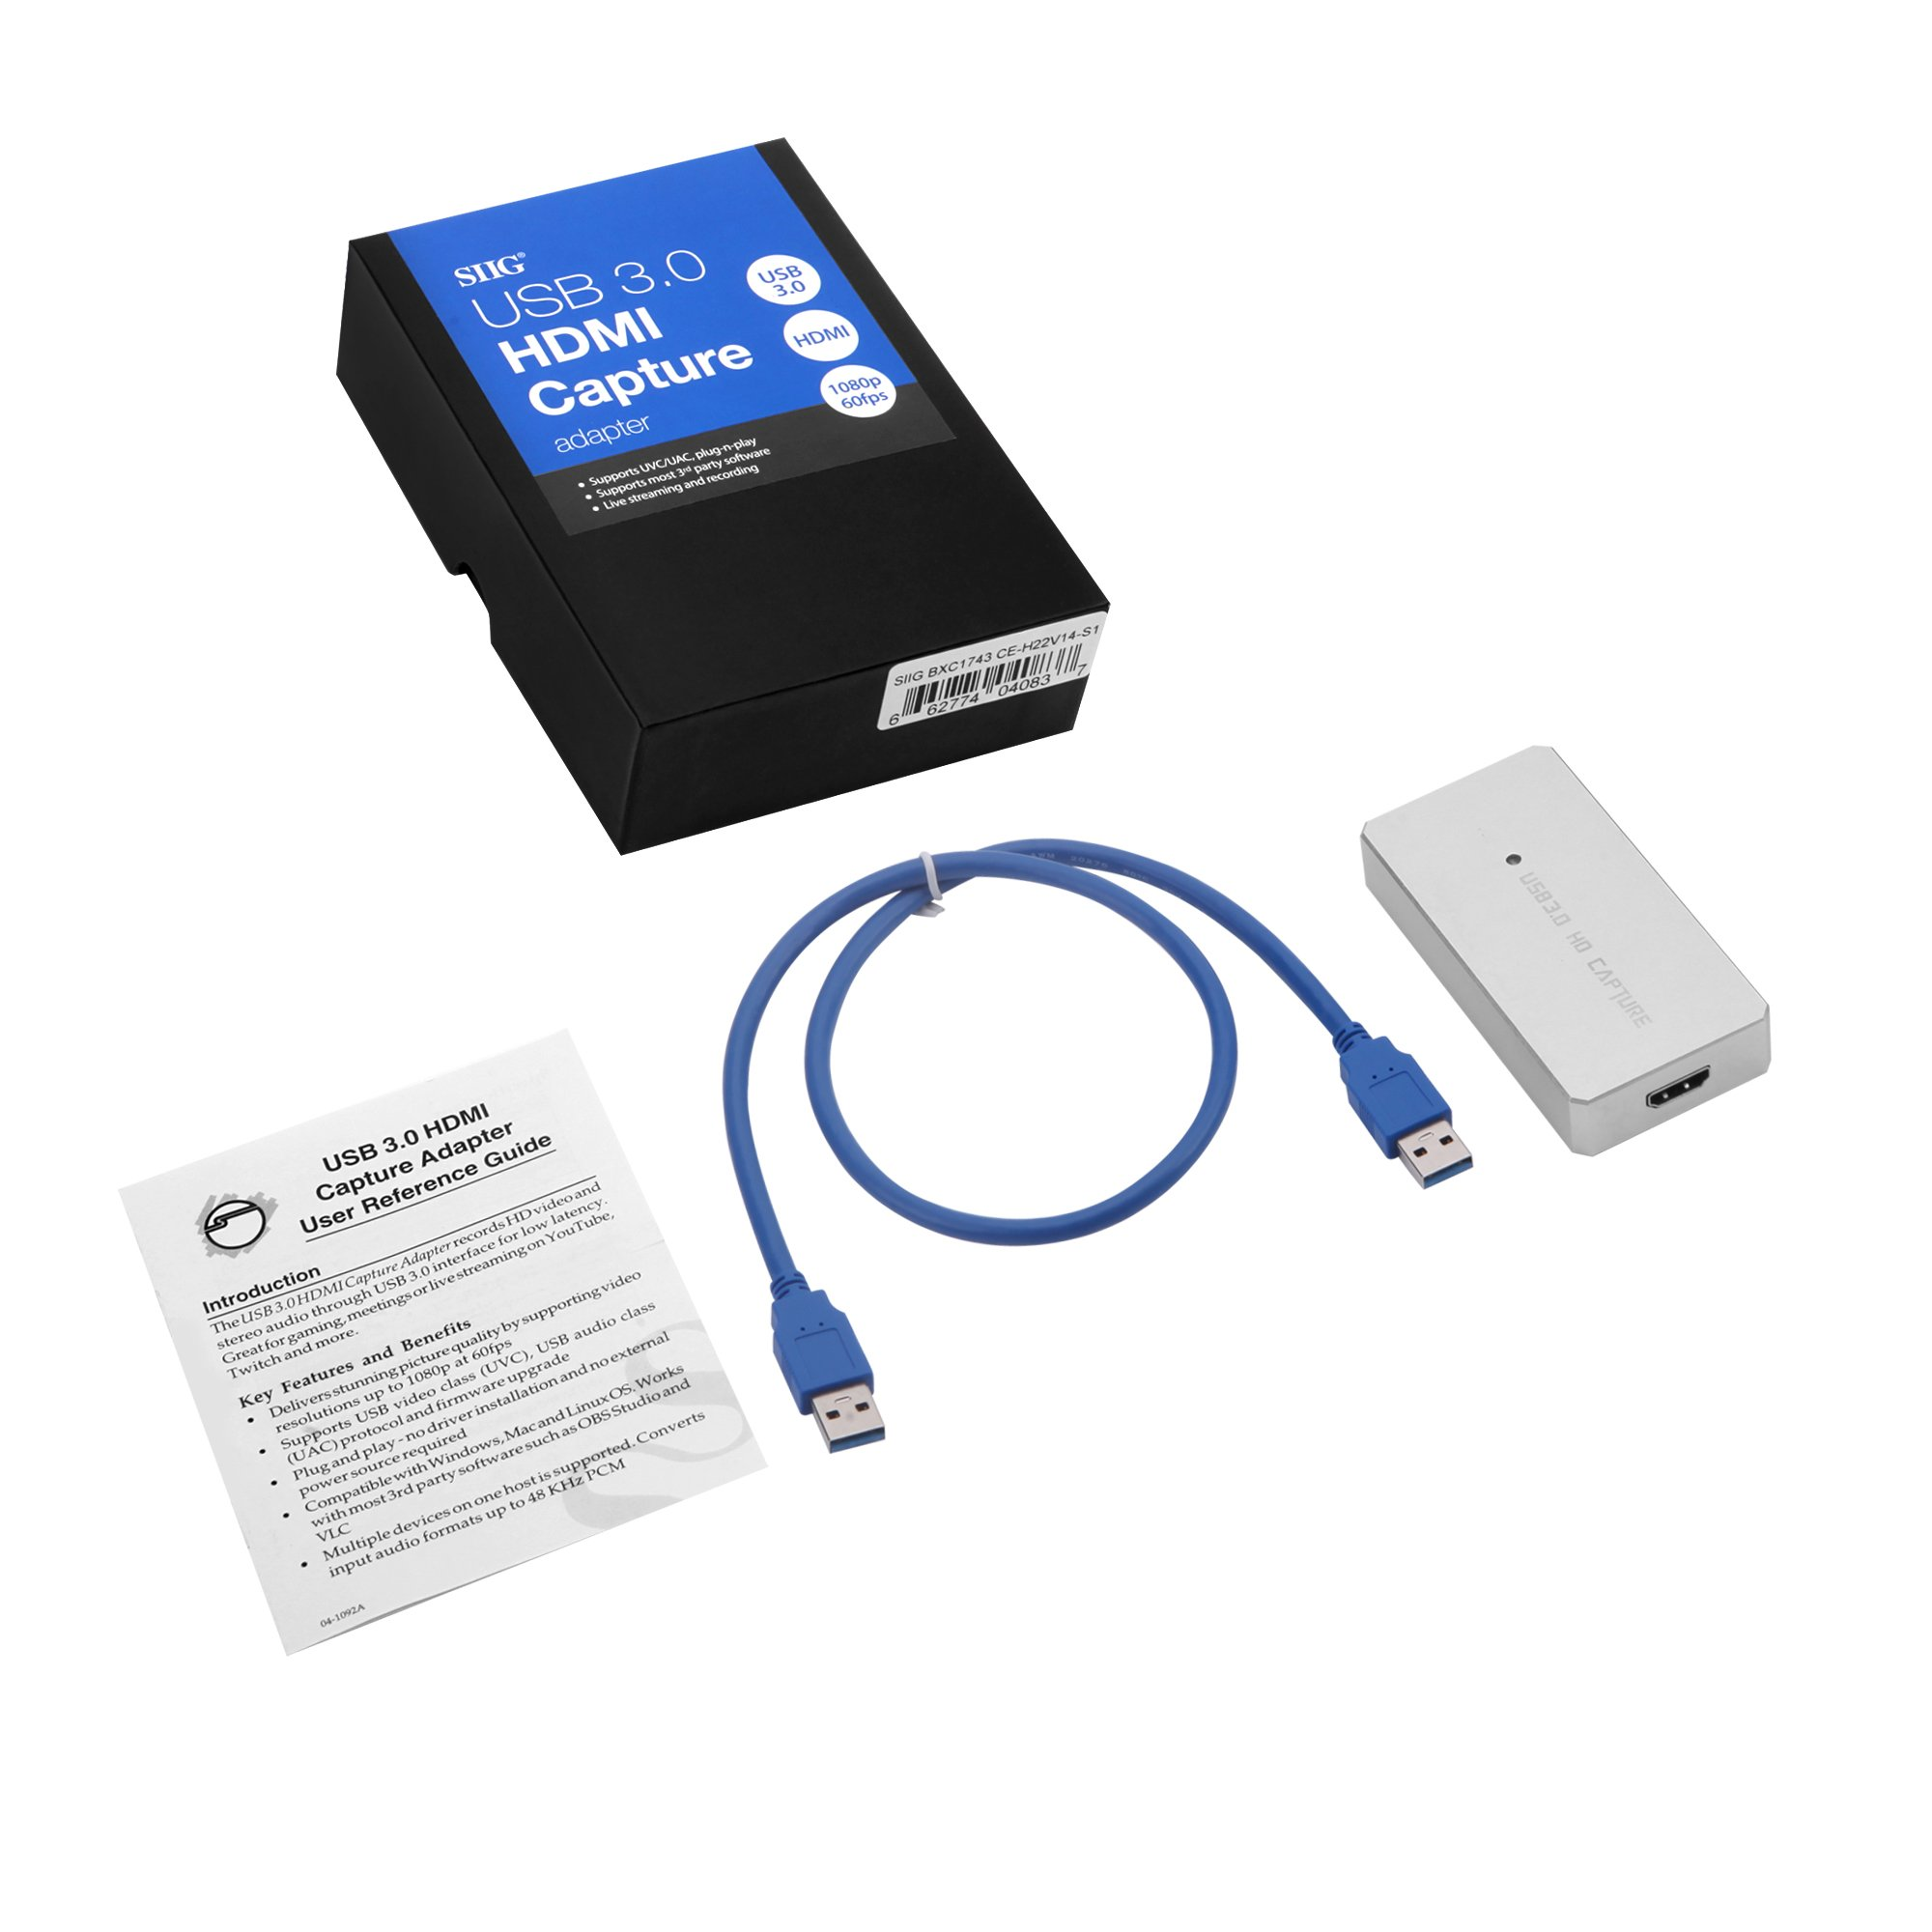 SIIG USB 3.0 HDMI Capture Adapter by SIIG (Image #6)